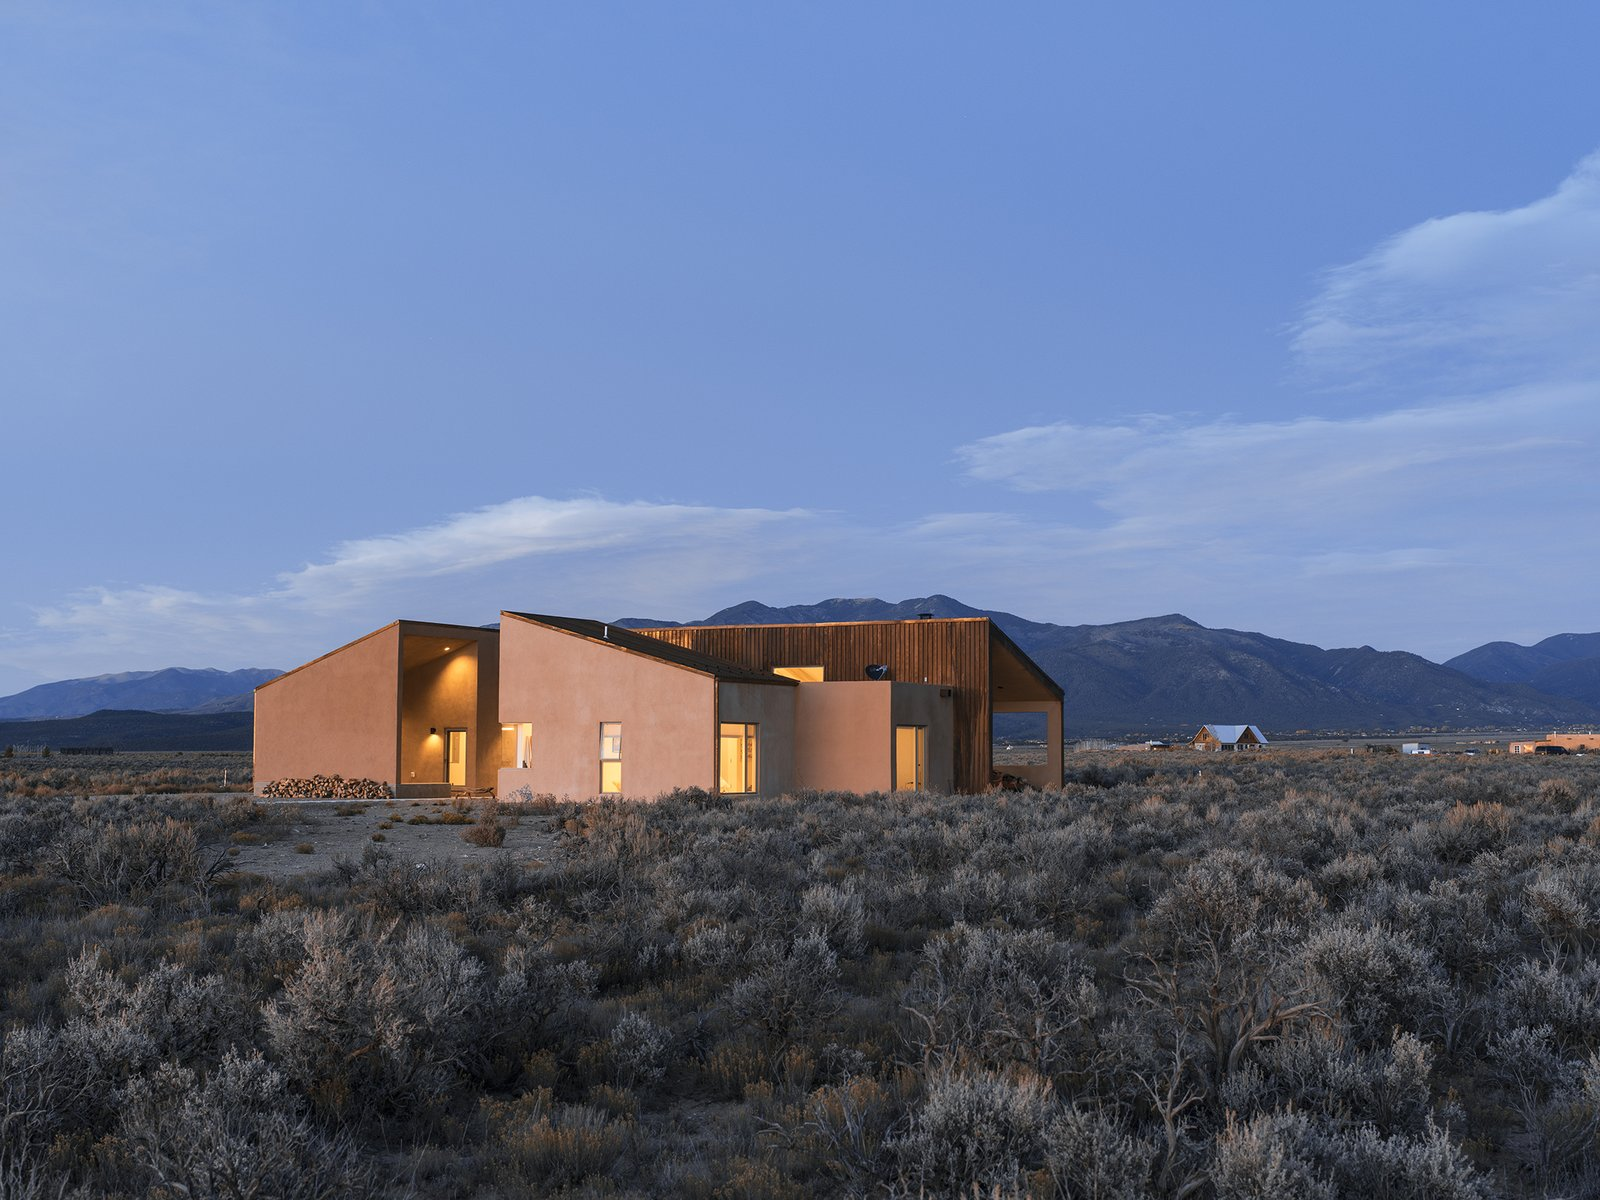 """Desert, Shrubs, Exterior, Stucco, House, and Wood On a five-acre property outside Taos, New Mexico, designer Molly Bell worked closely with her father, builder Ed Bell, to create a new residence for owner Lois Rodin. """"Lois requested that it appear as a grouping of individual masses, so that it read more like a cluster than a solitary shape,"""" Molly says. """"I hope it shows that it's OK to do something modern in such a traditional environment, and not to be afraid of it."""" - Taos, New Mexico Dwell Magazine : July / August 2017  Best Exterior Desert Photos from A Rookie Designer and Her Builder Father Create an Artist's Sculptural Loft in the Desert"""